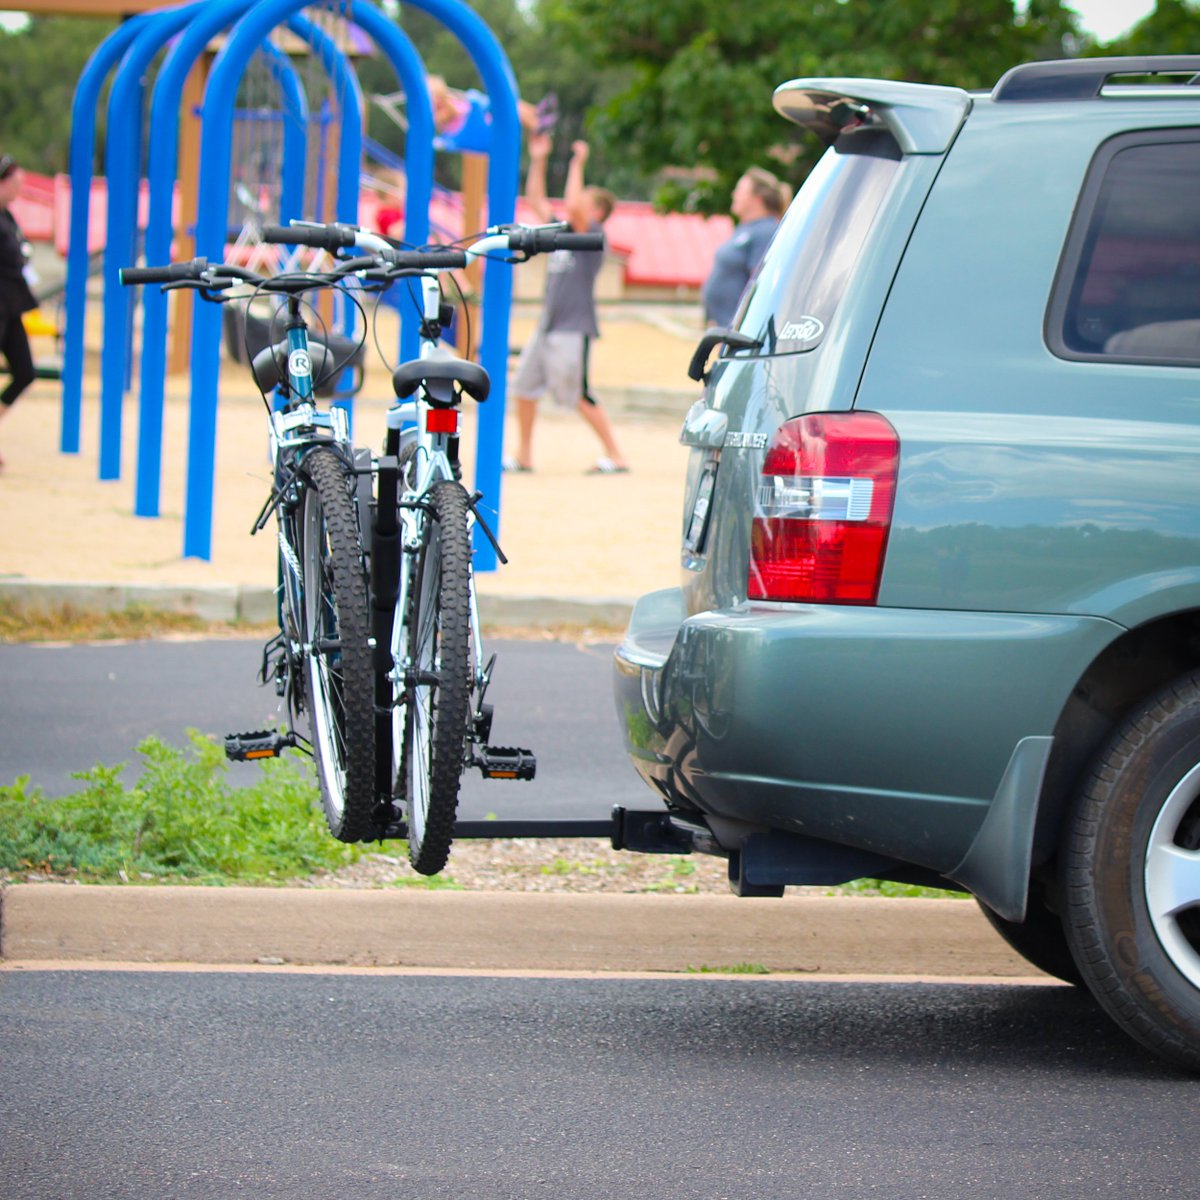 Sunday Funday! How was everyone's ride this morning? #fun #parks #cycle  PRE-ORDER the NEO-2 Two Bike Carrier for only $99.00 now! https://hubs.ly/H0mfzQ60pic.twitter.com/L7SVpW7If3